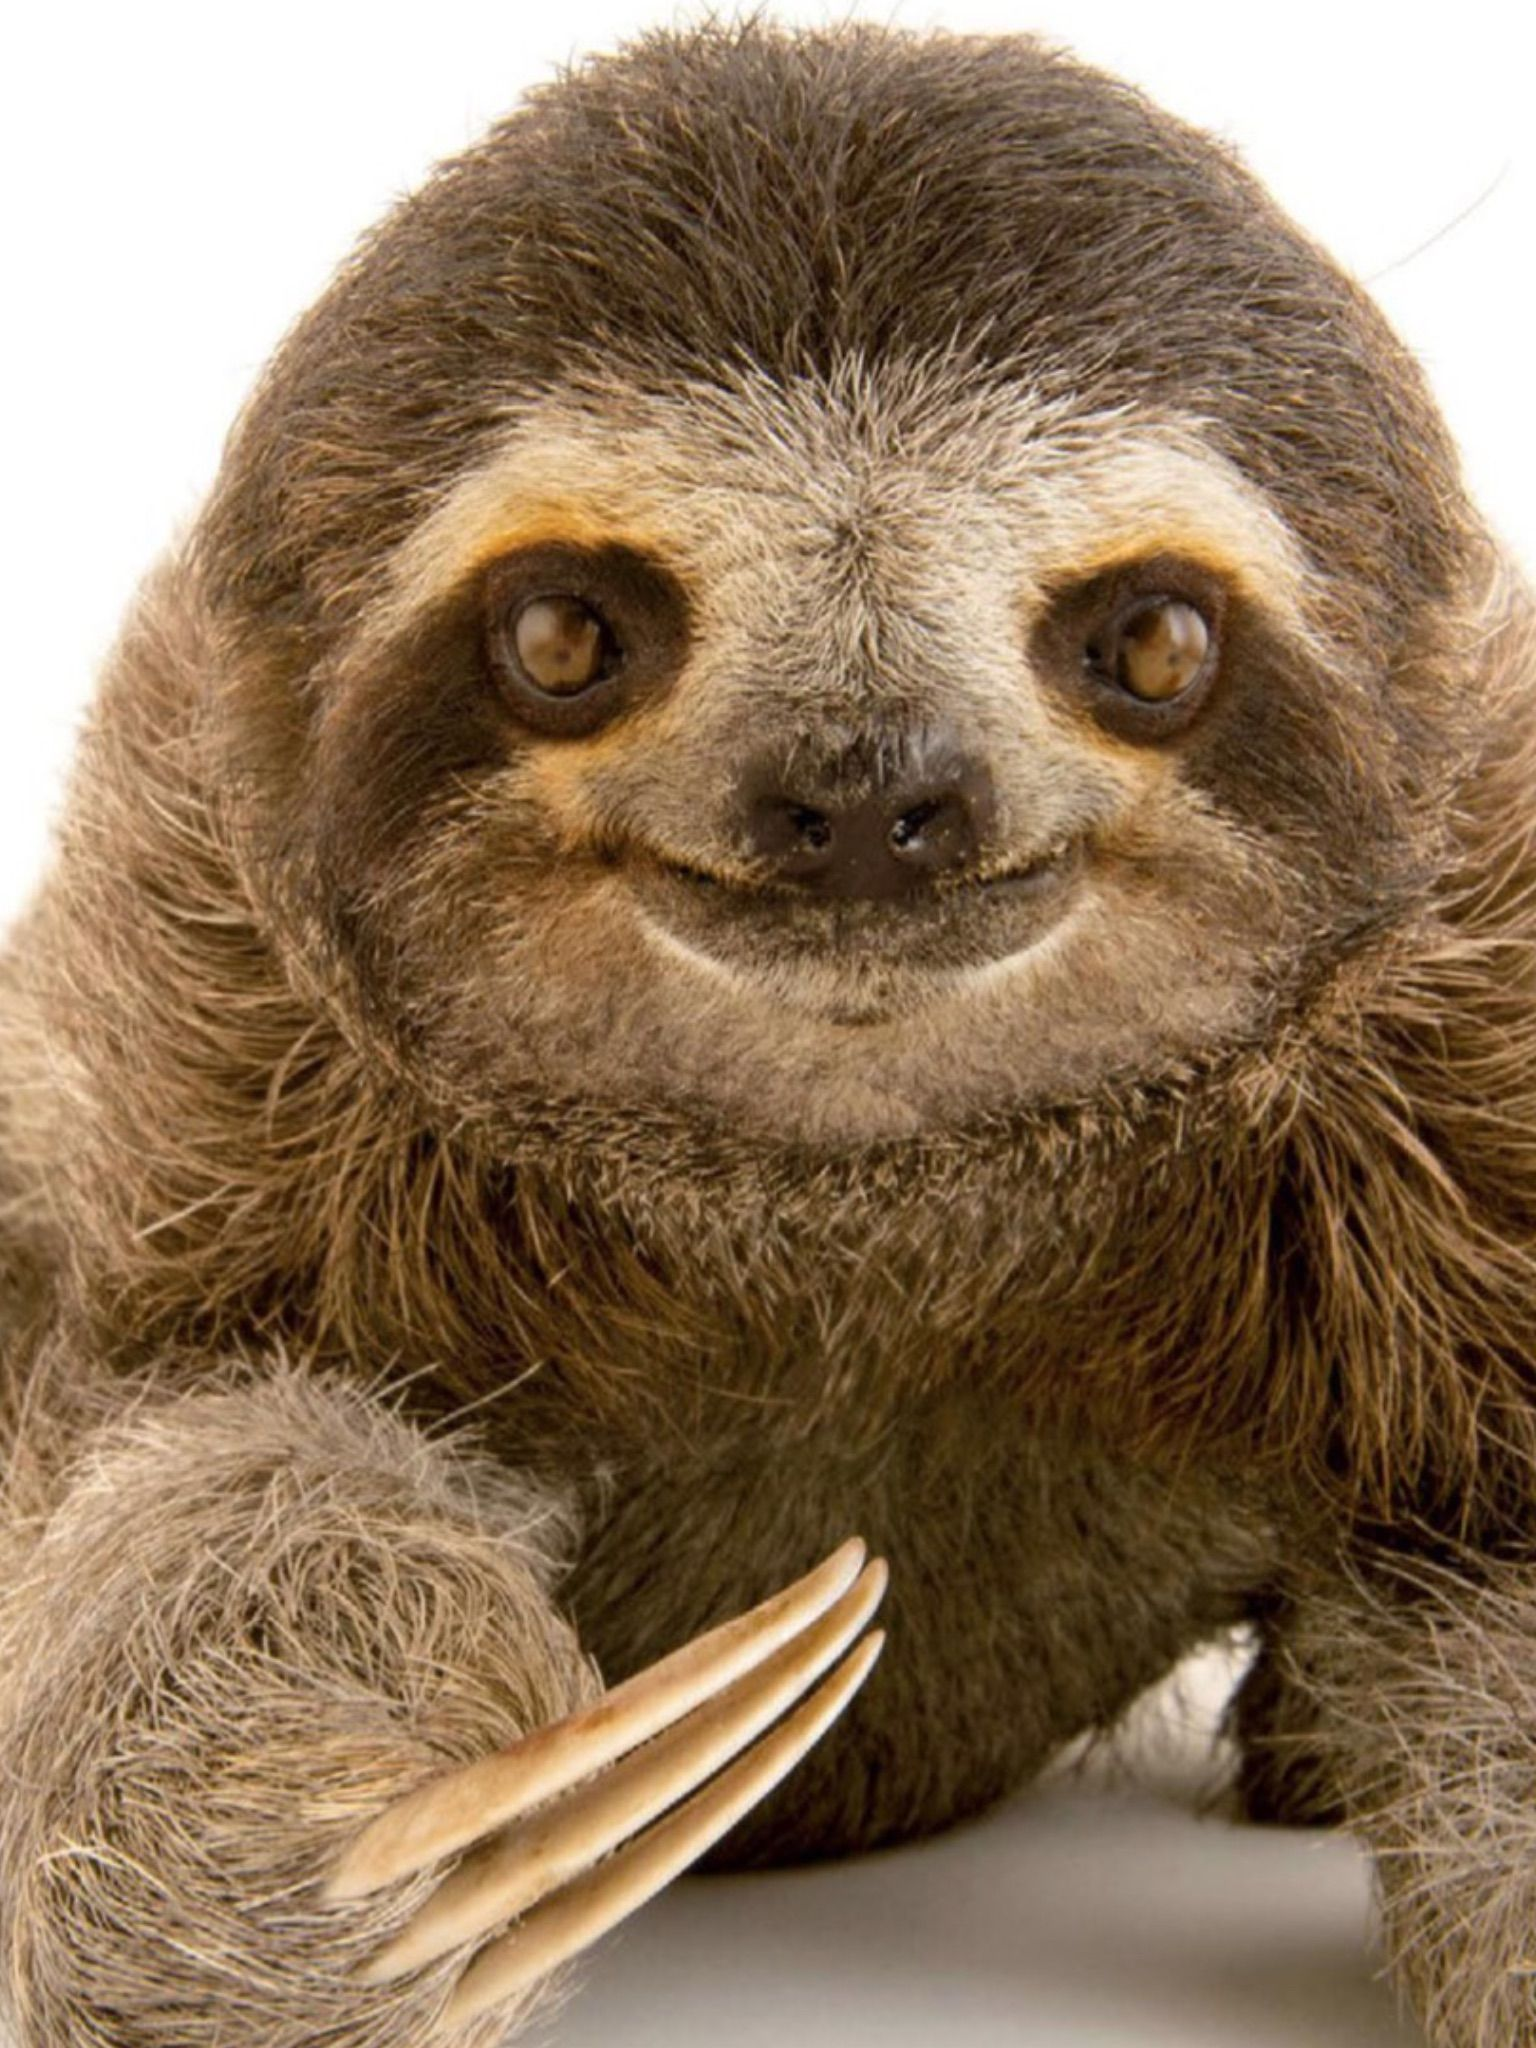 What a face! Cute baby sloths, Cute sloth pictures, Cute